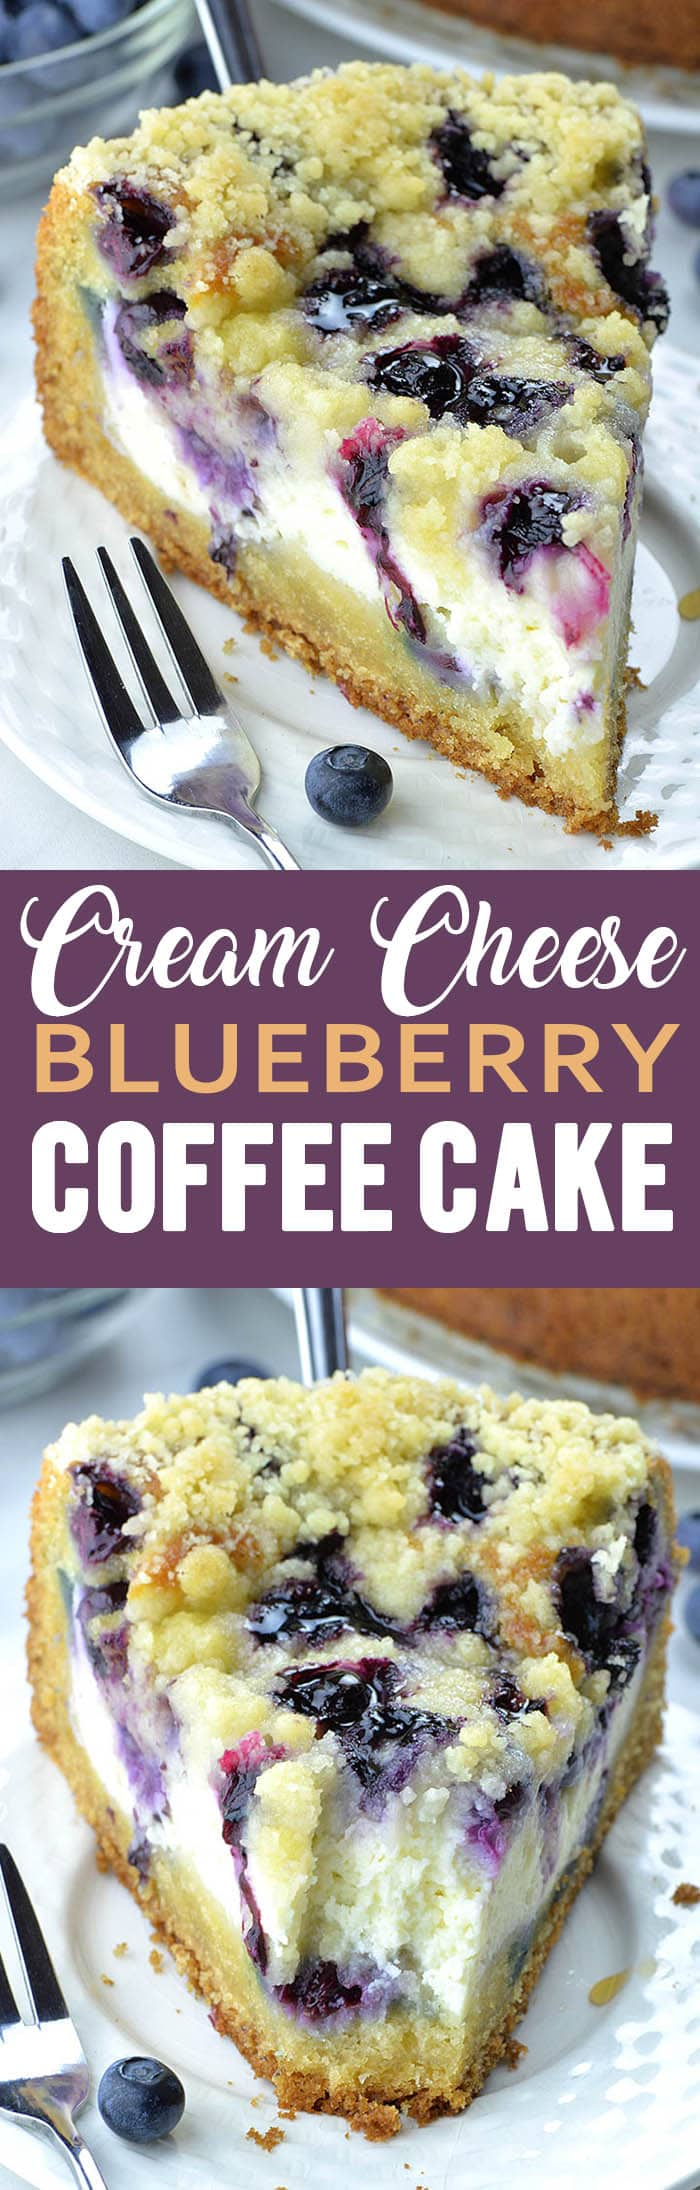 Blueberry CreamCheese Coffee Cake will be your new favorite coffee cake recipe! Easy coffee cake recipe is perfect for morning treats, brunch or dessert cake after dinner!  #blueberry #coffeecake #blueberryrecipes